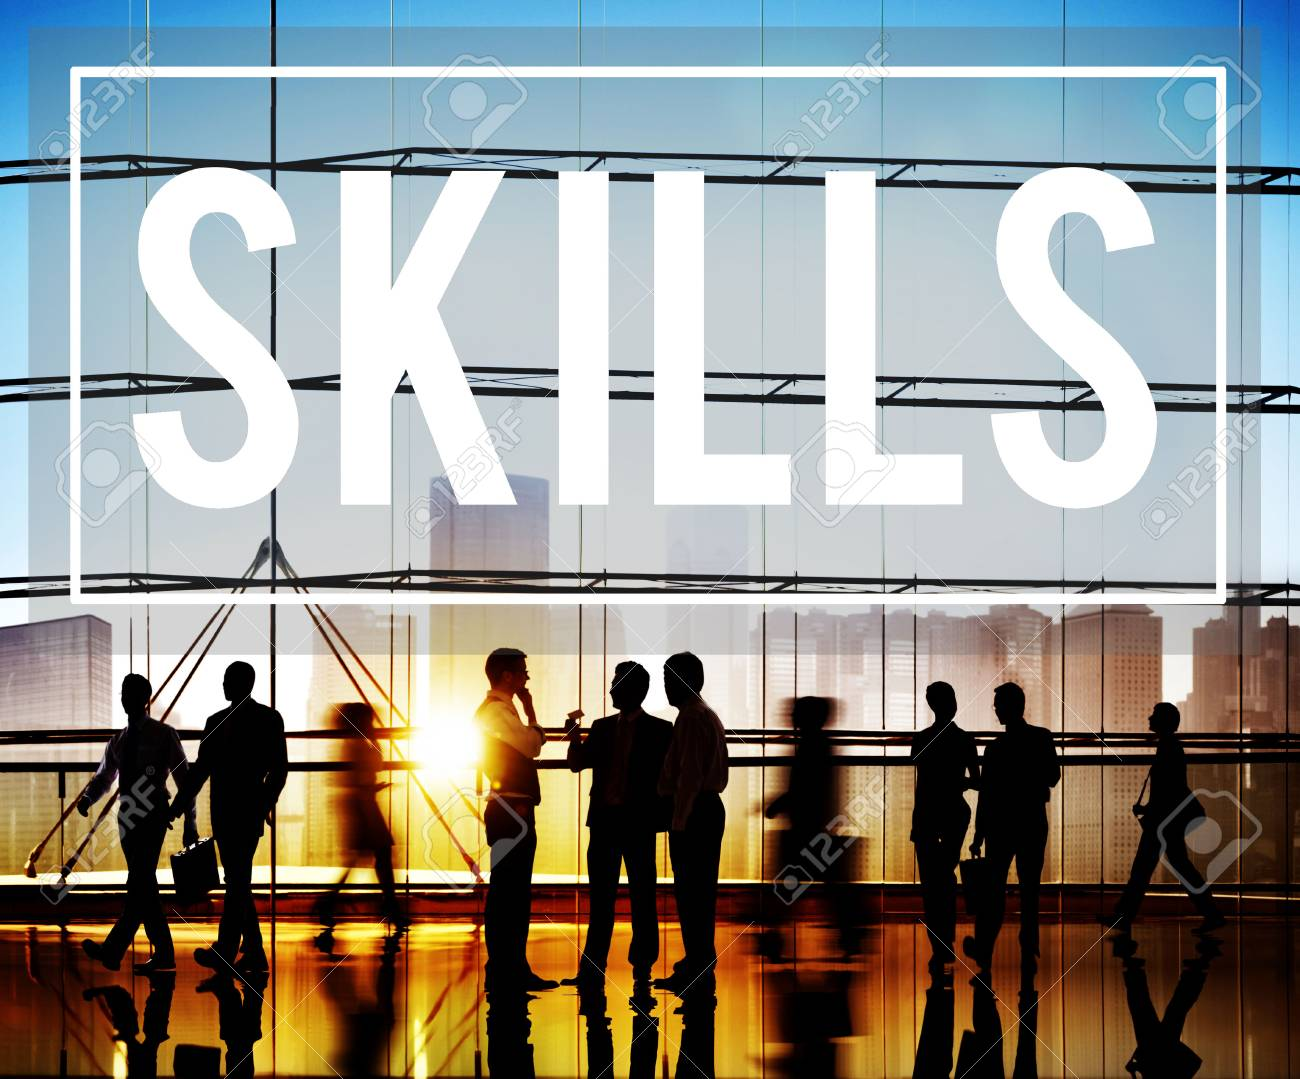 Skill Ability Qualification Performance Talent Concept - 51727466